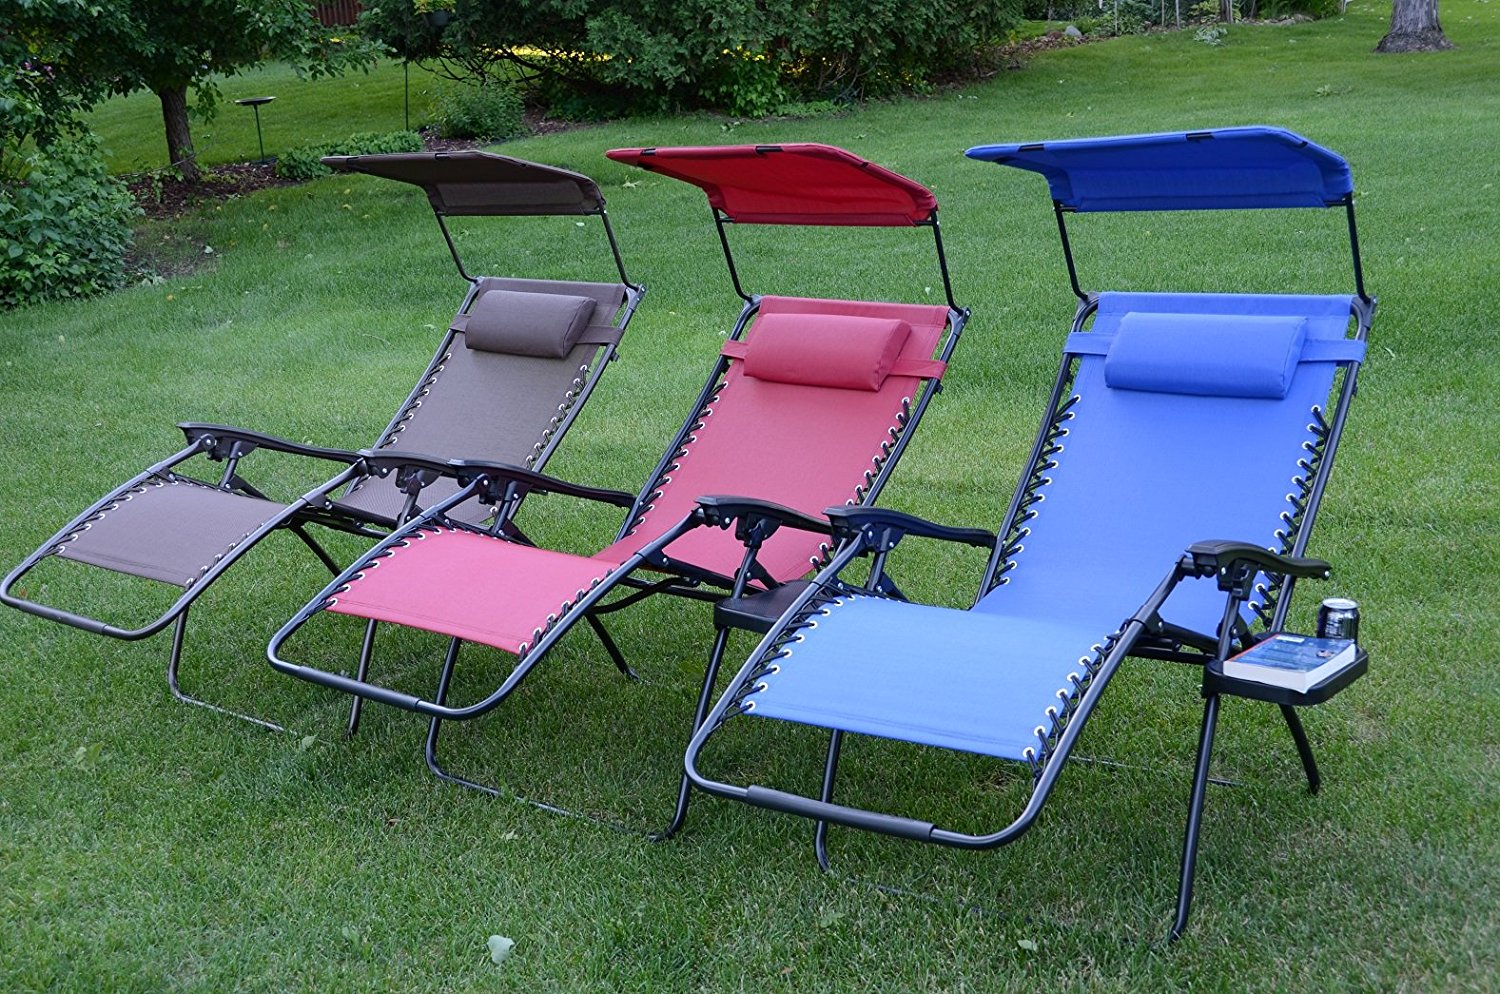 deluxe-oversized-extra-large-zero-gravity-chair-with-canopy-tray